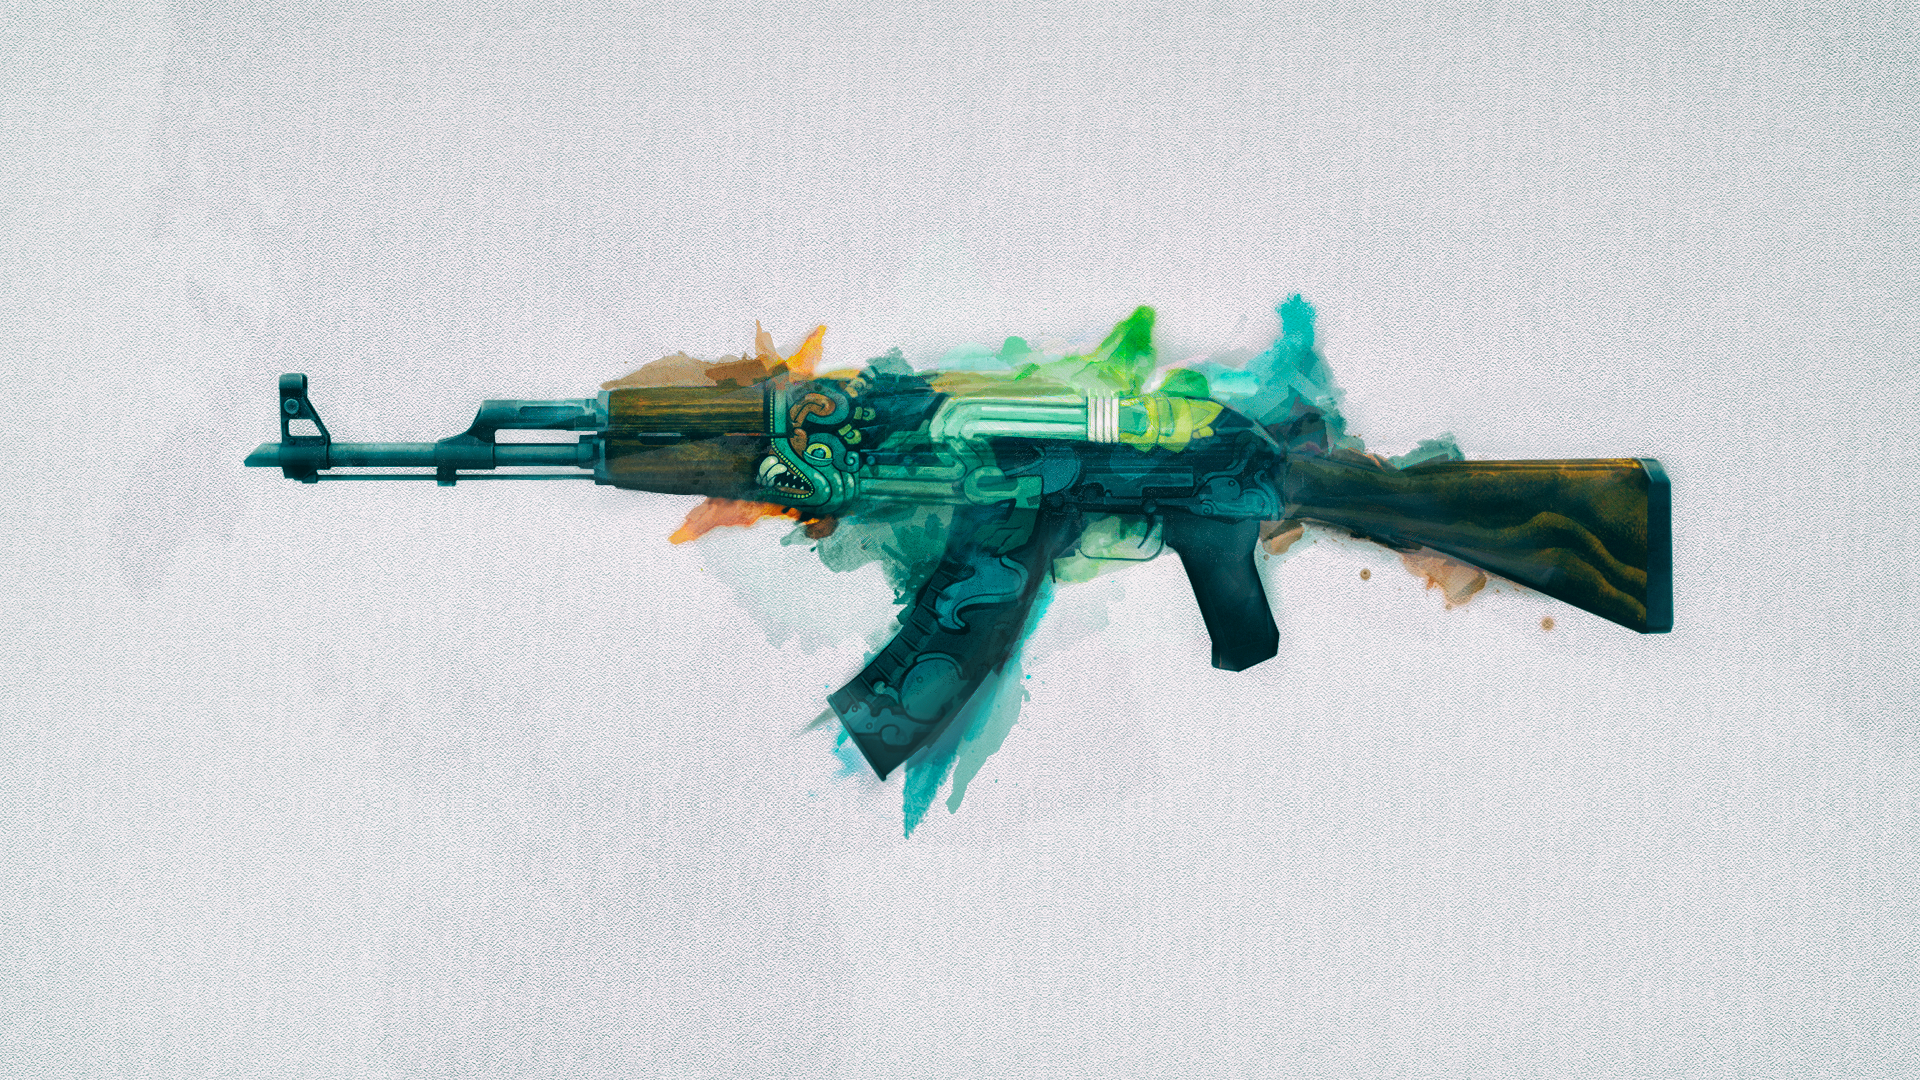 General 1920x1080 Counter Strike Global Offensive Go Wallpaper